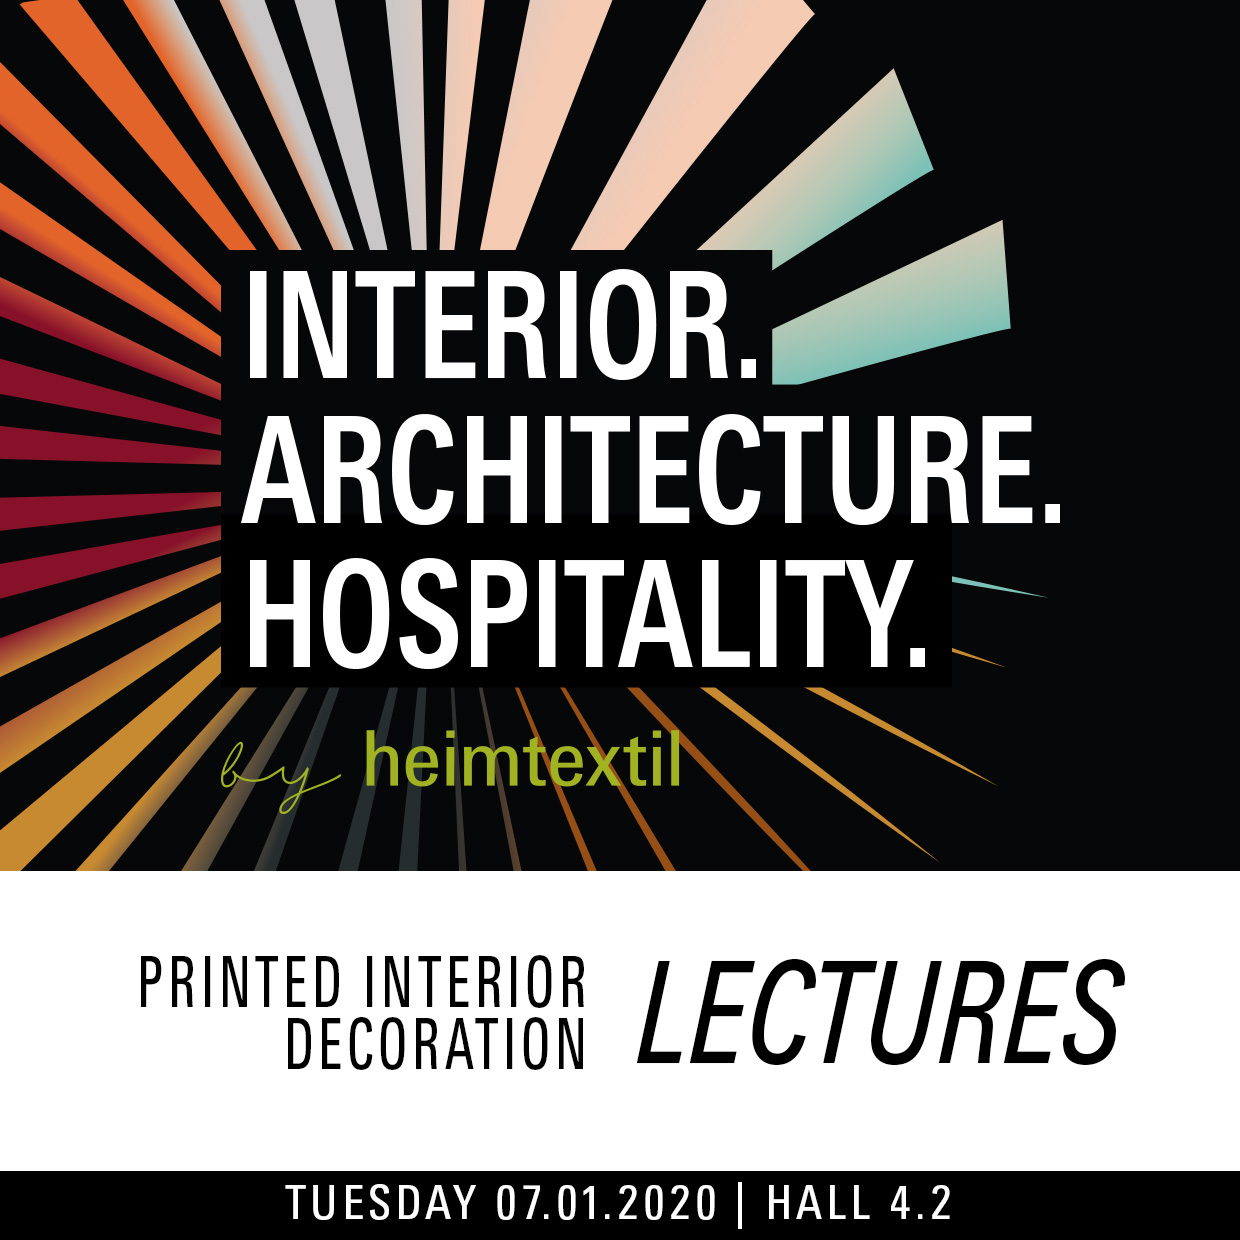 printed-interior-decoration-lectures1